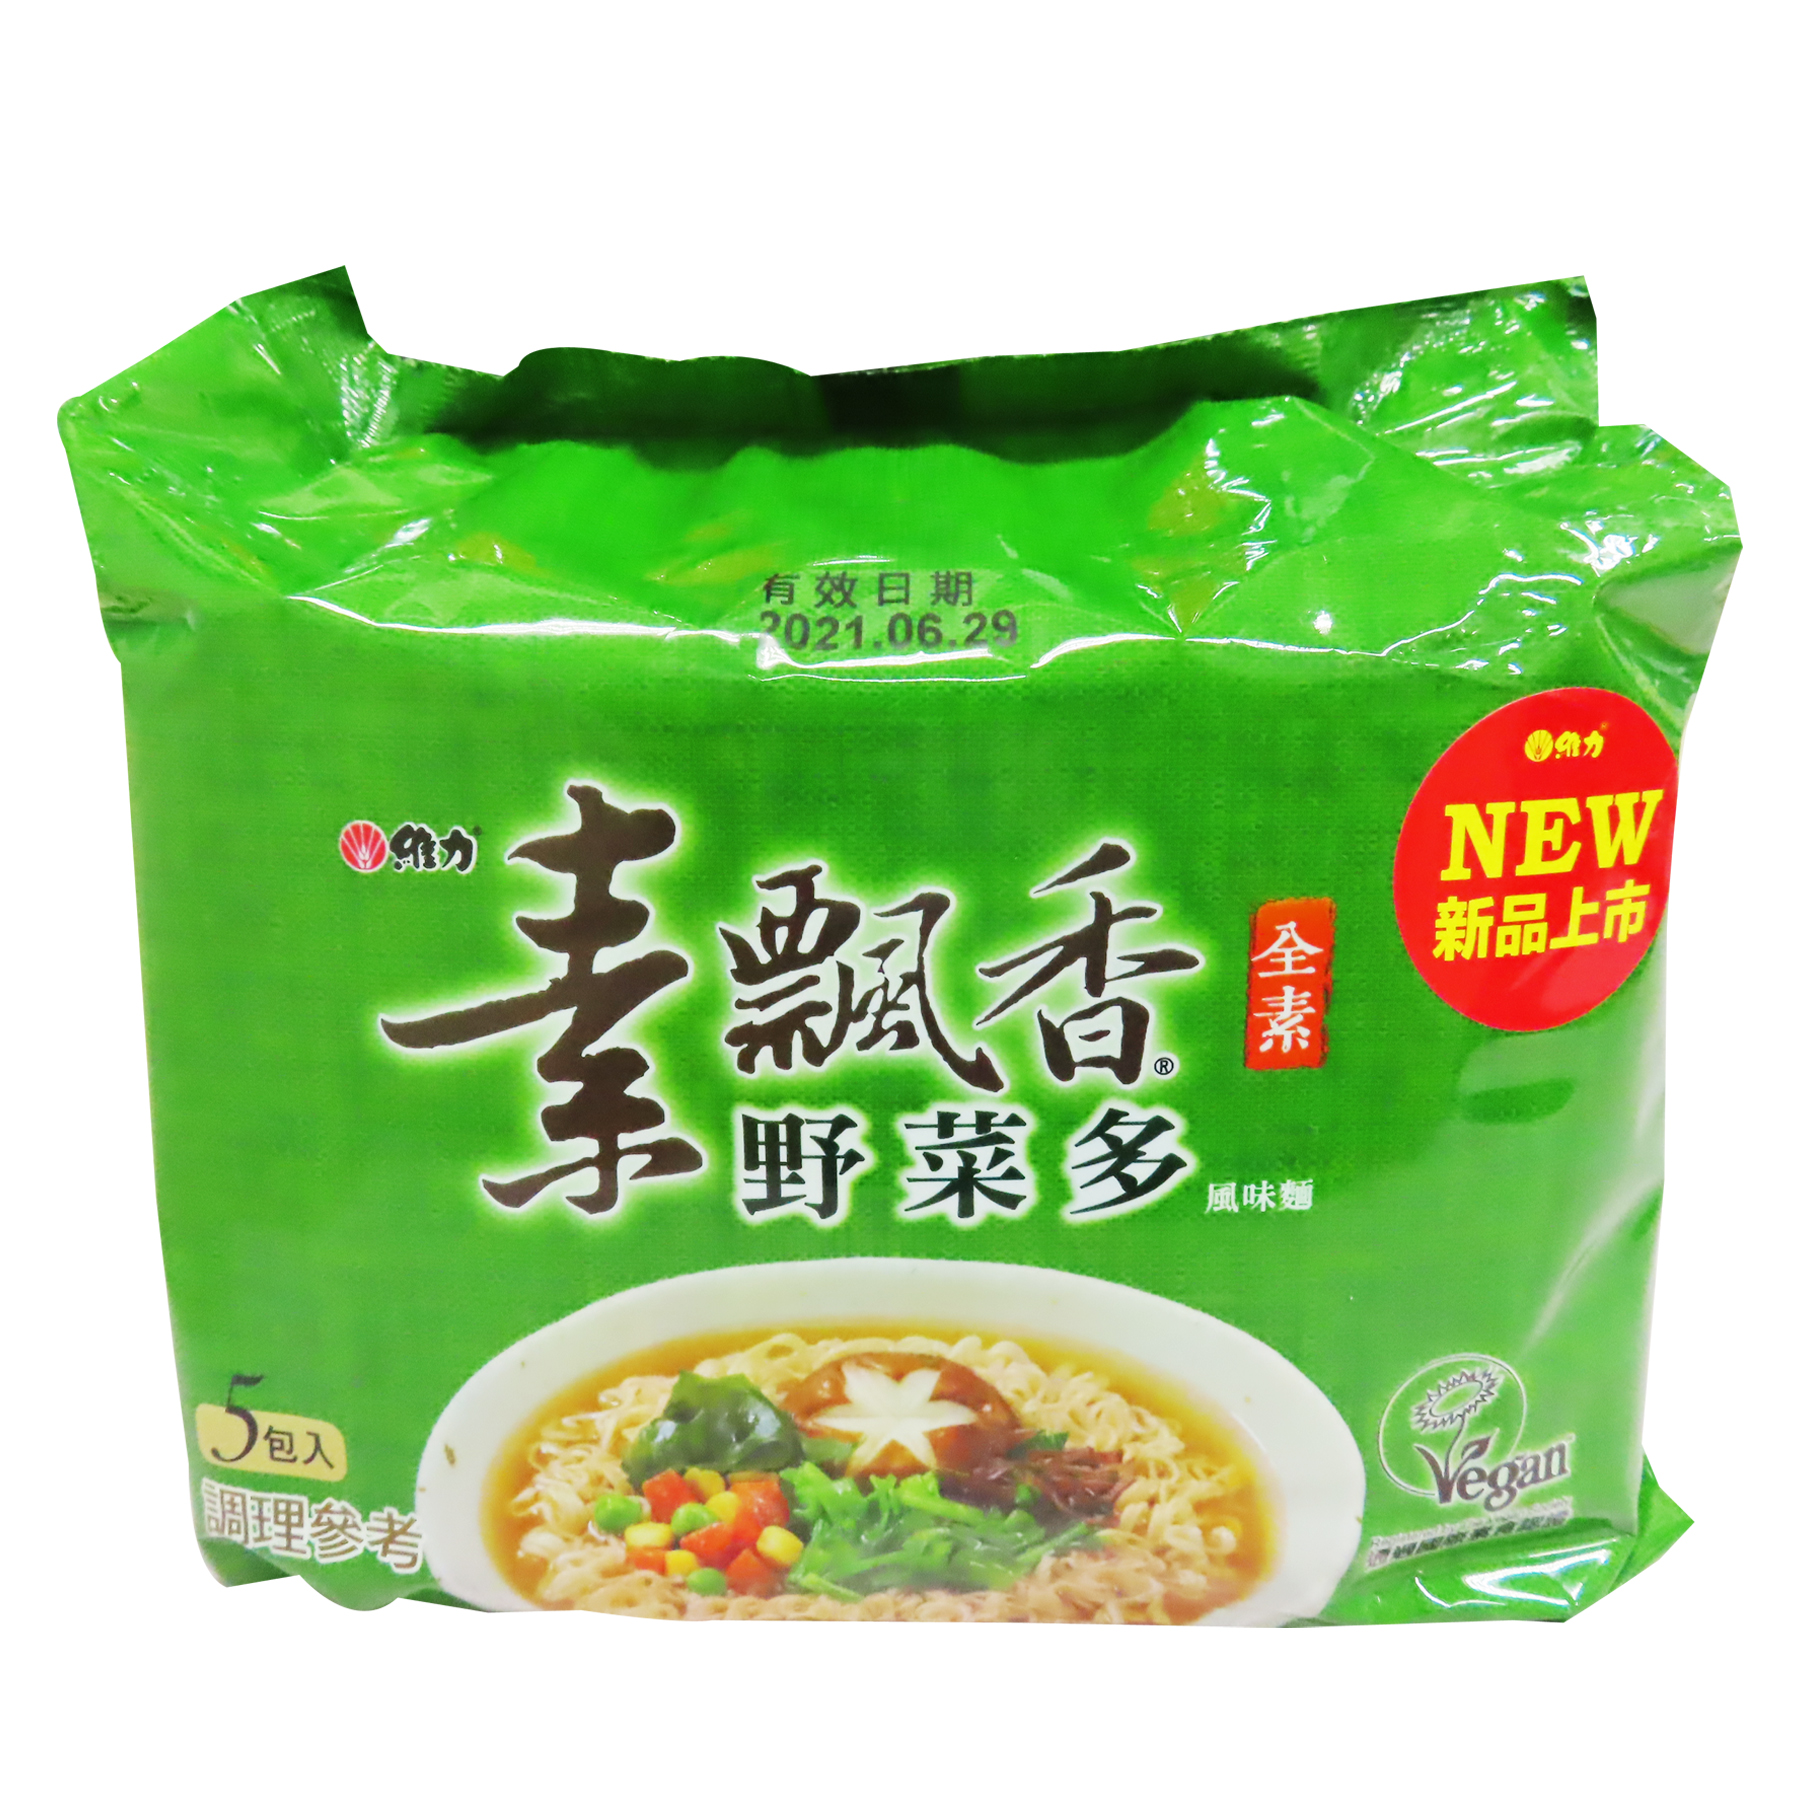 Image Vegetable Noodle 维力 - 素飘香野菜多风味面 85grams x 5pkt